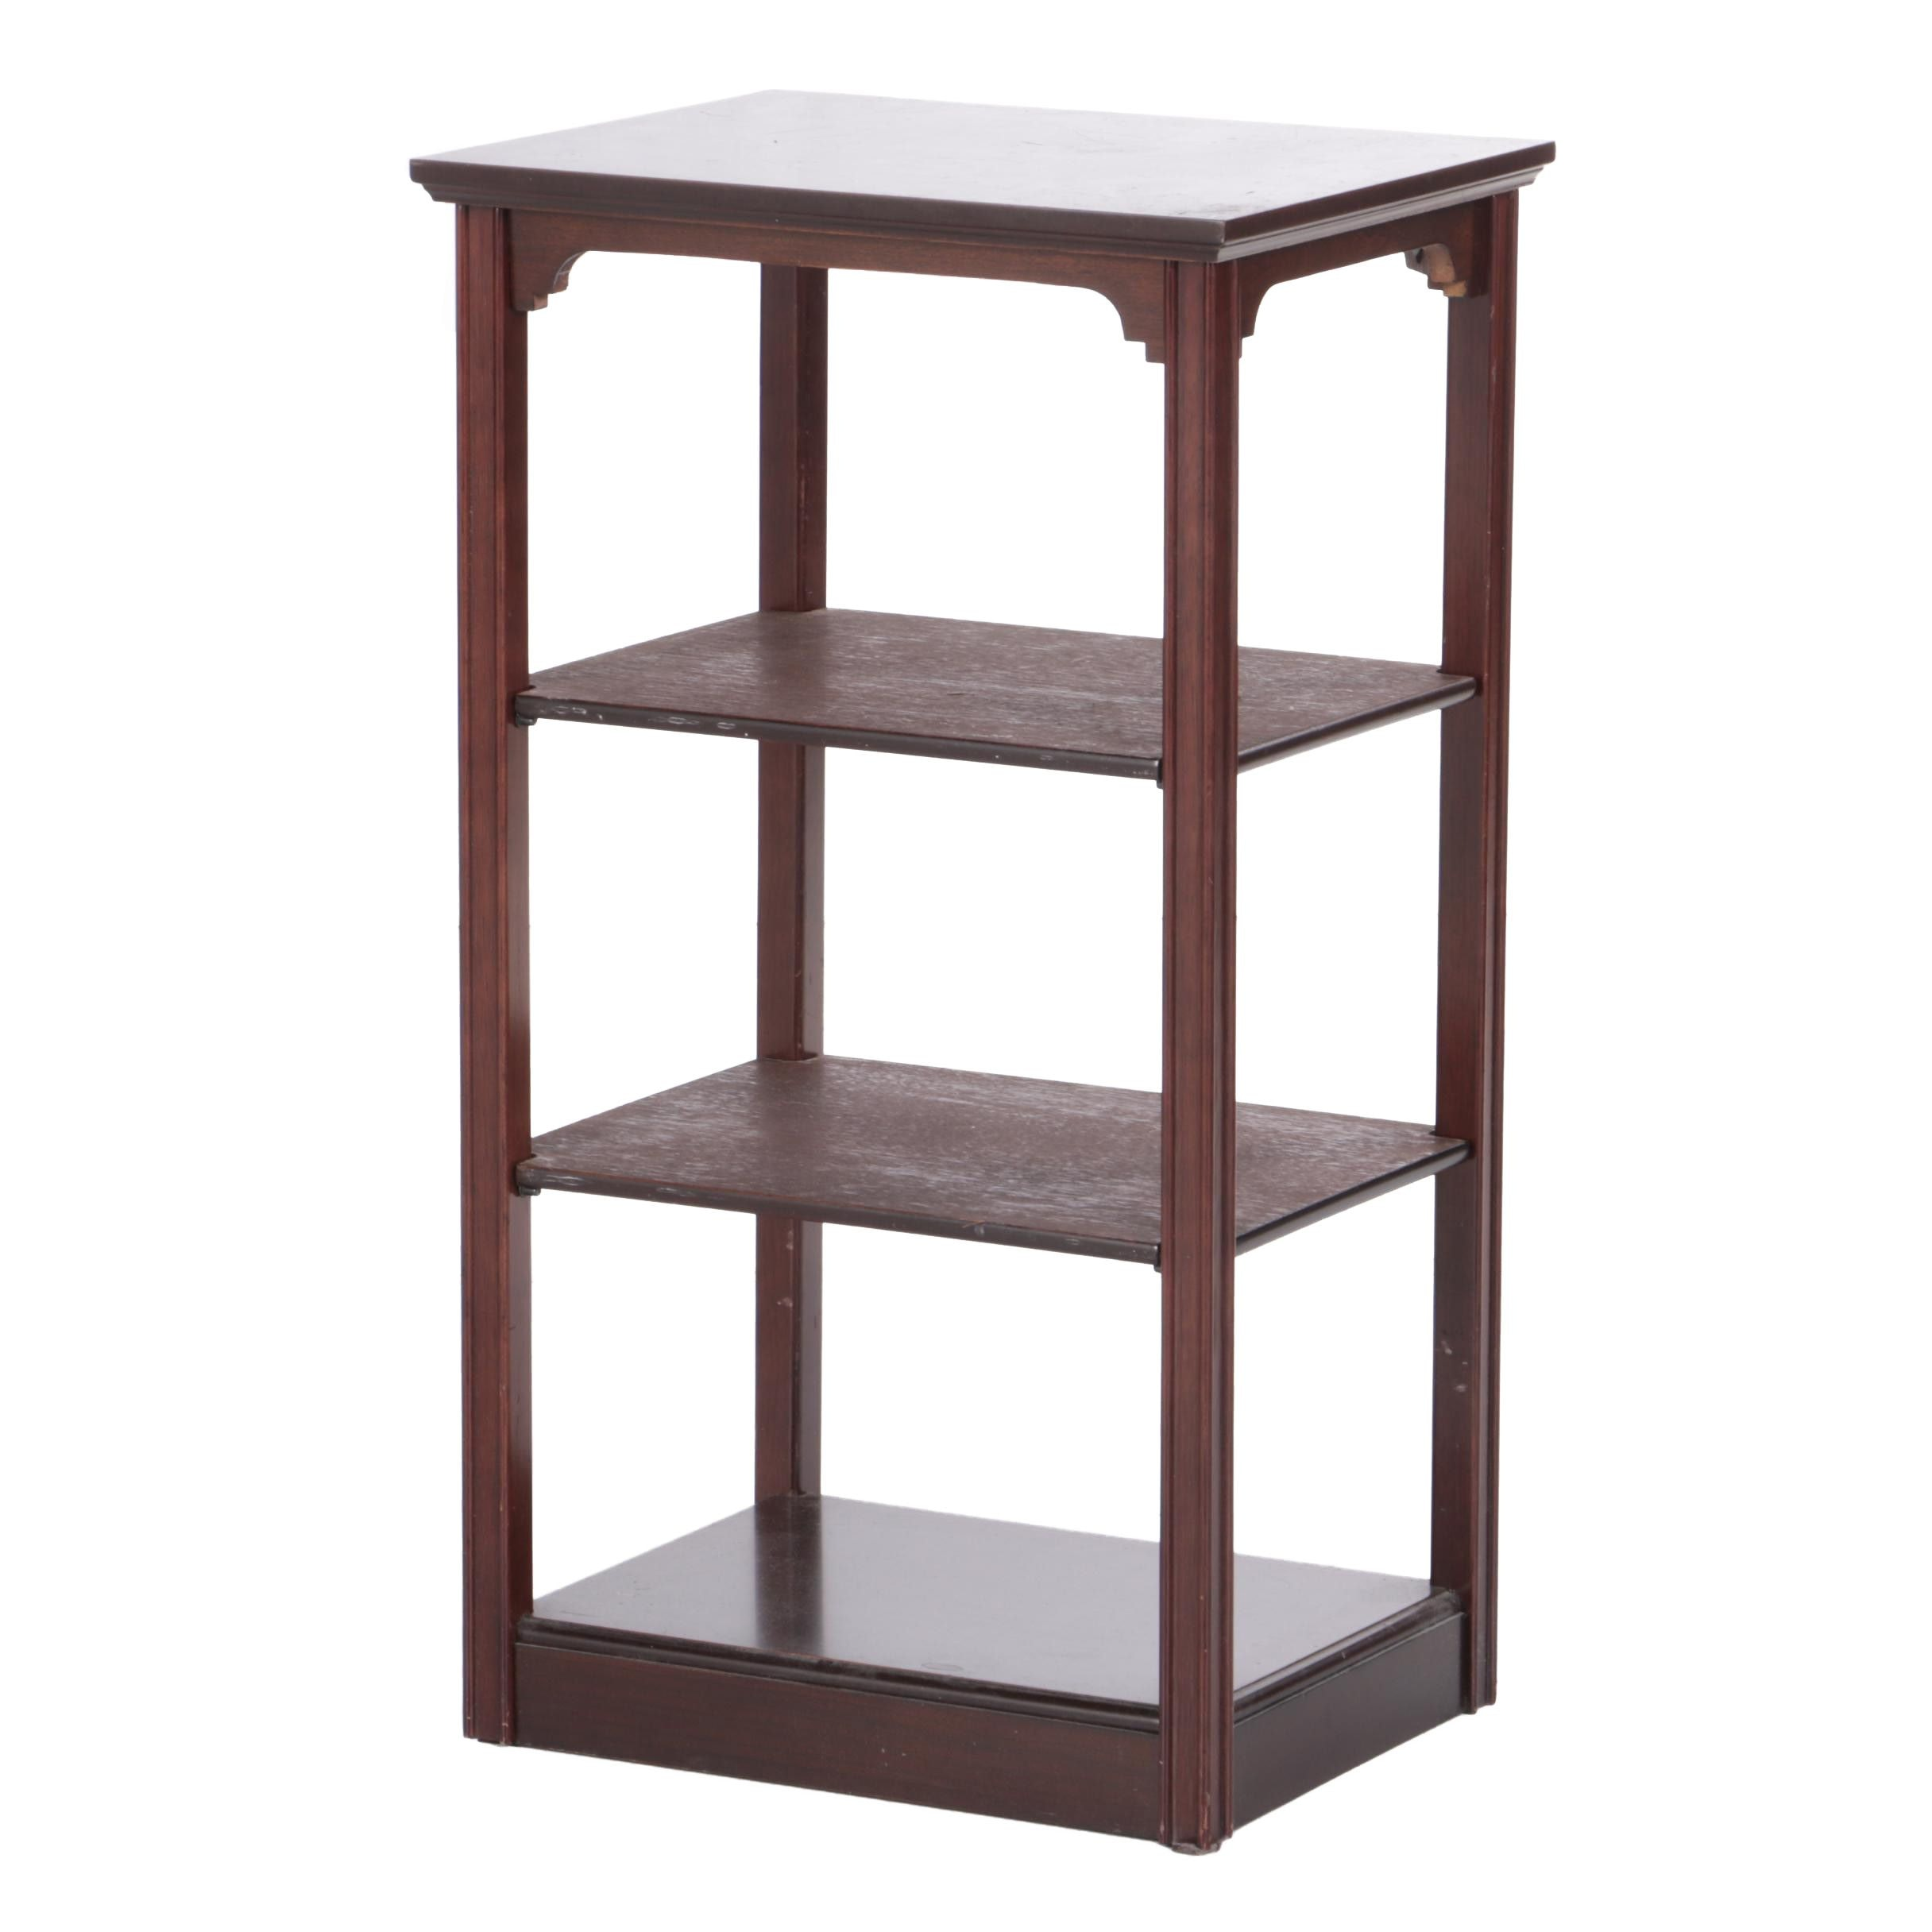 The Bombay Company Wood Side Table with Shelves